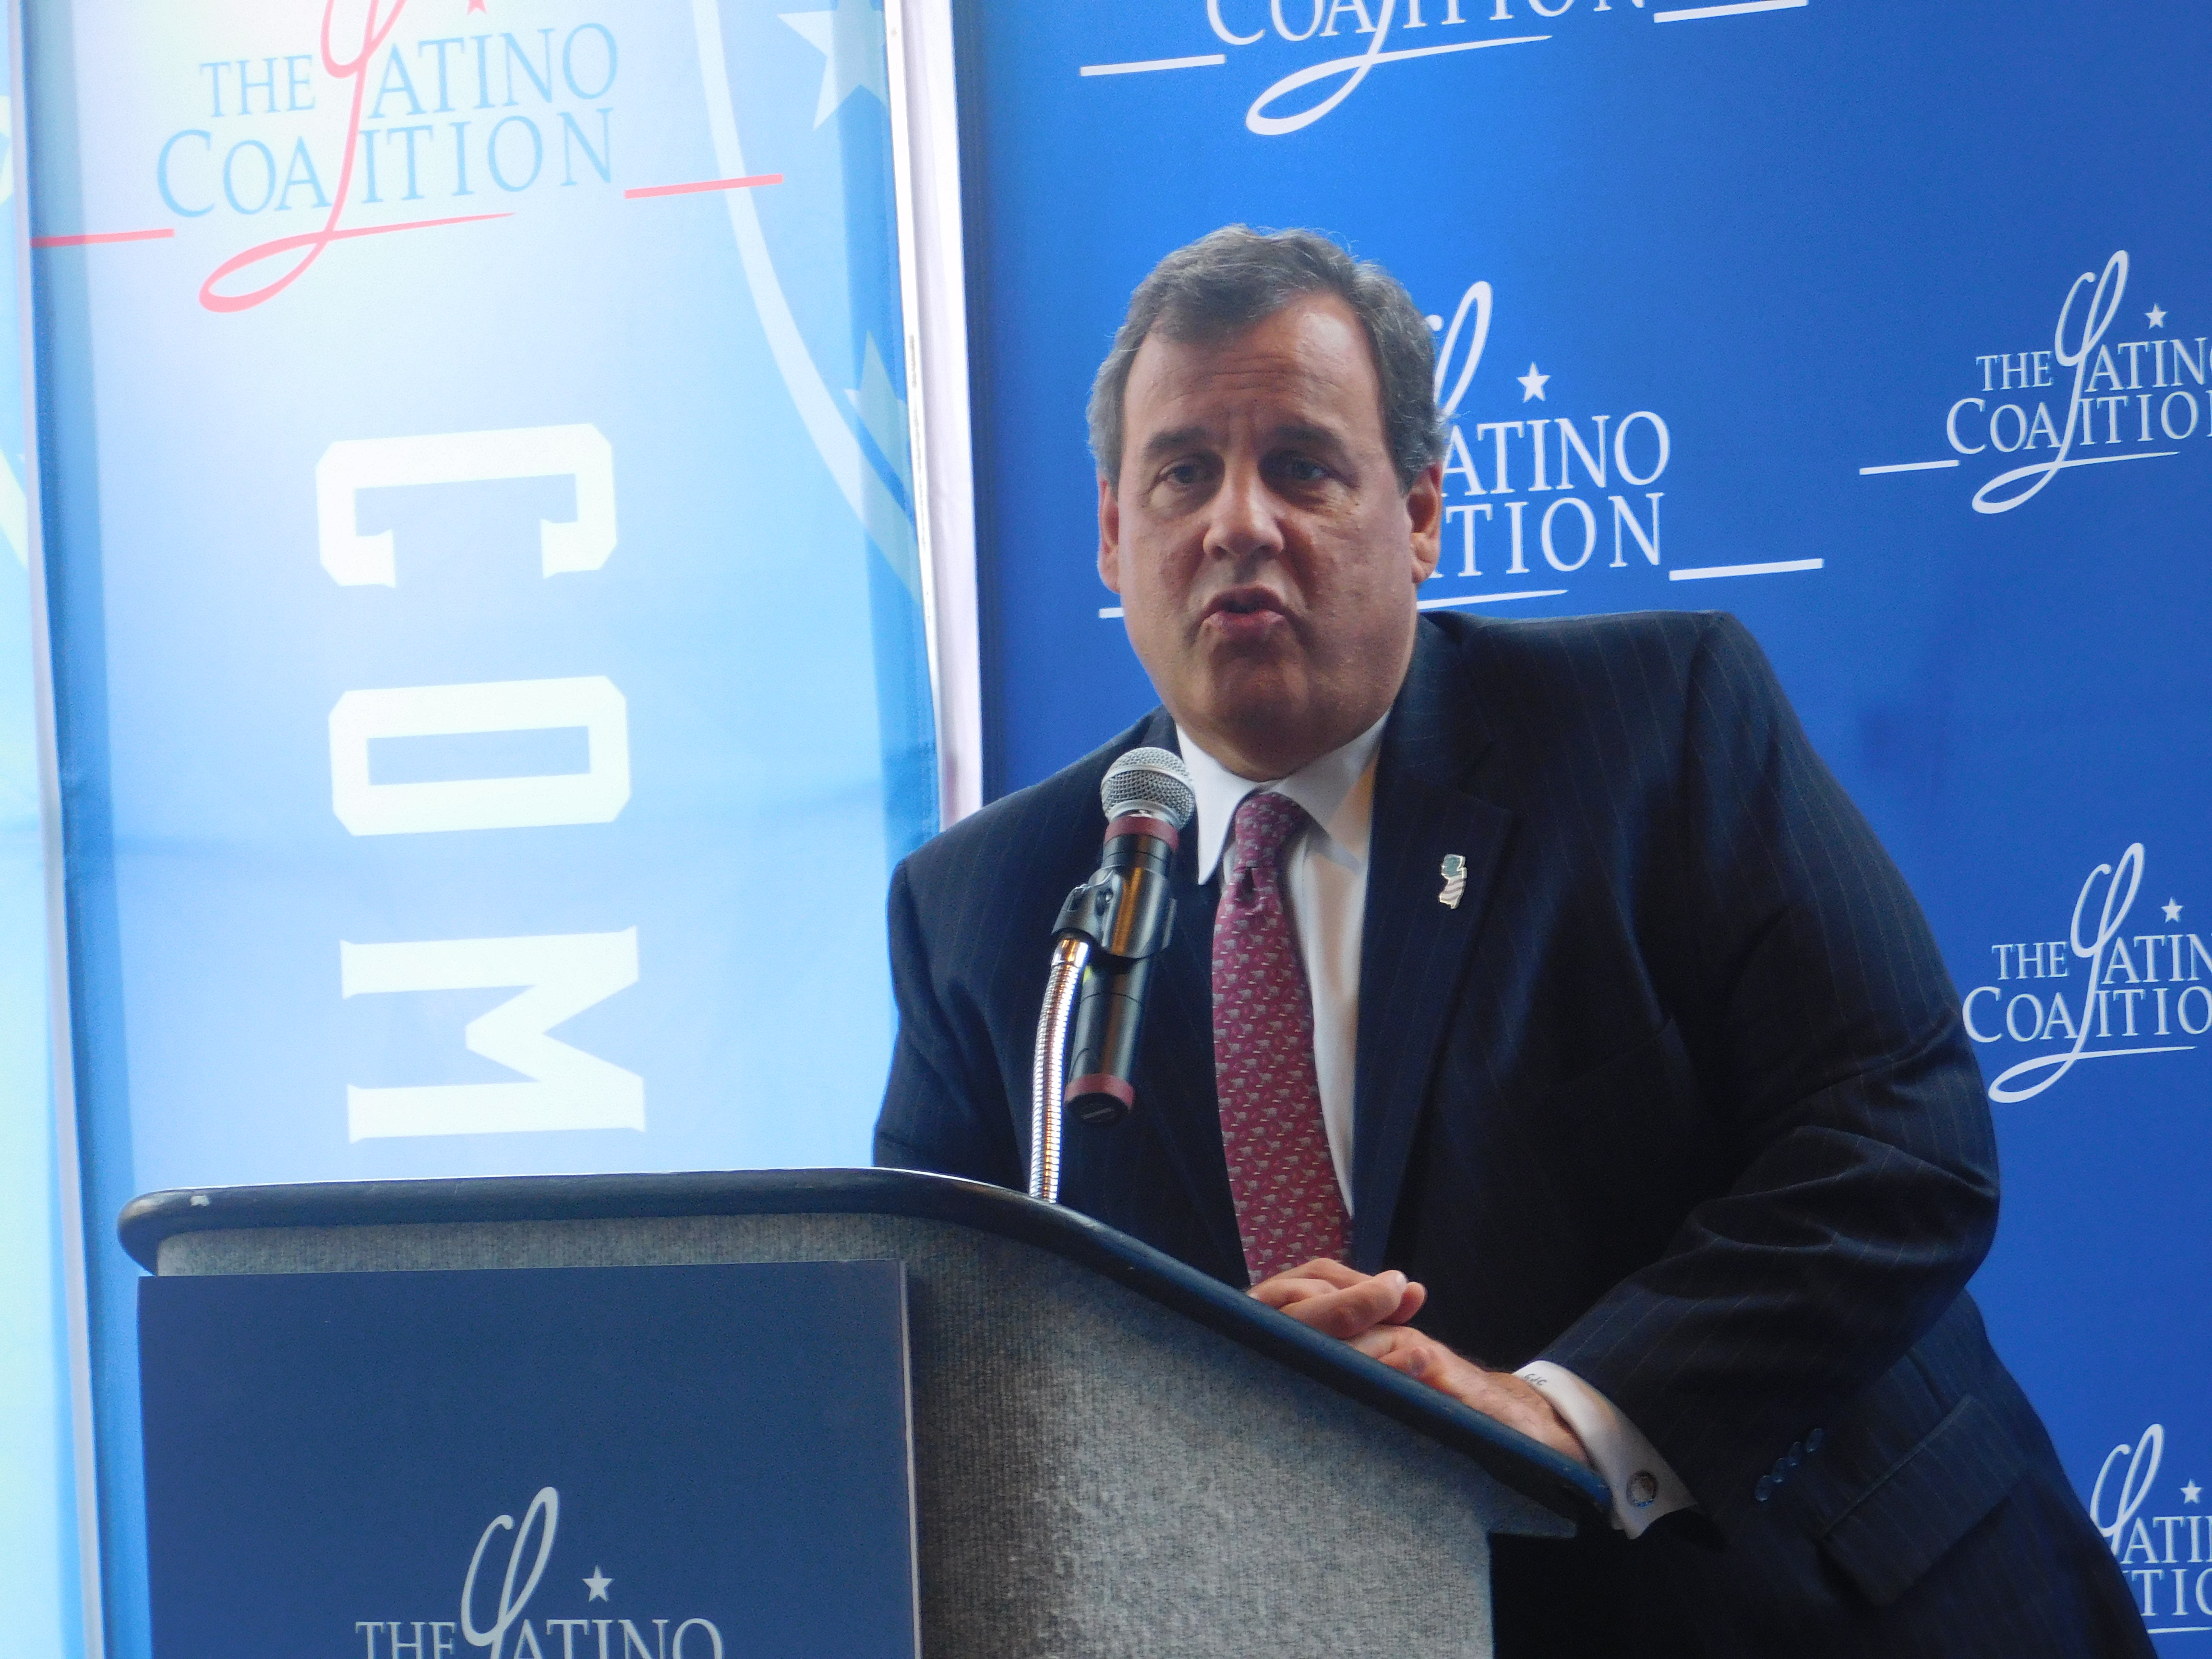 Christie addressed the Latino Coalition at the RNC.